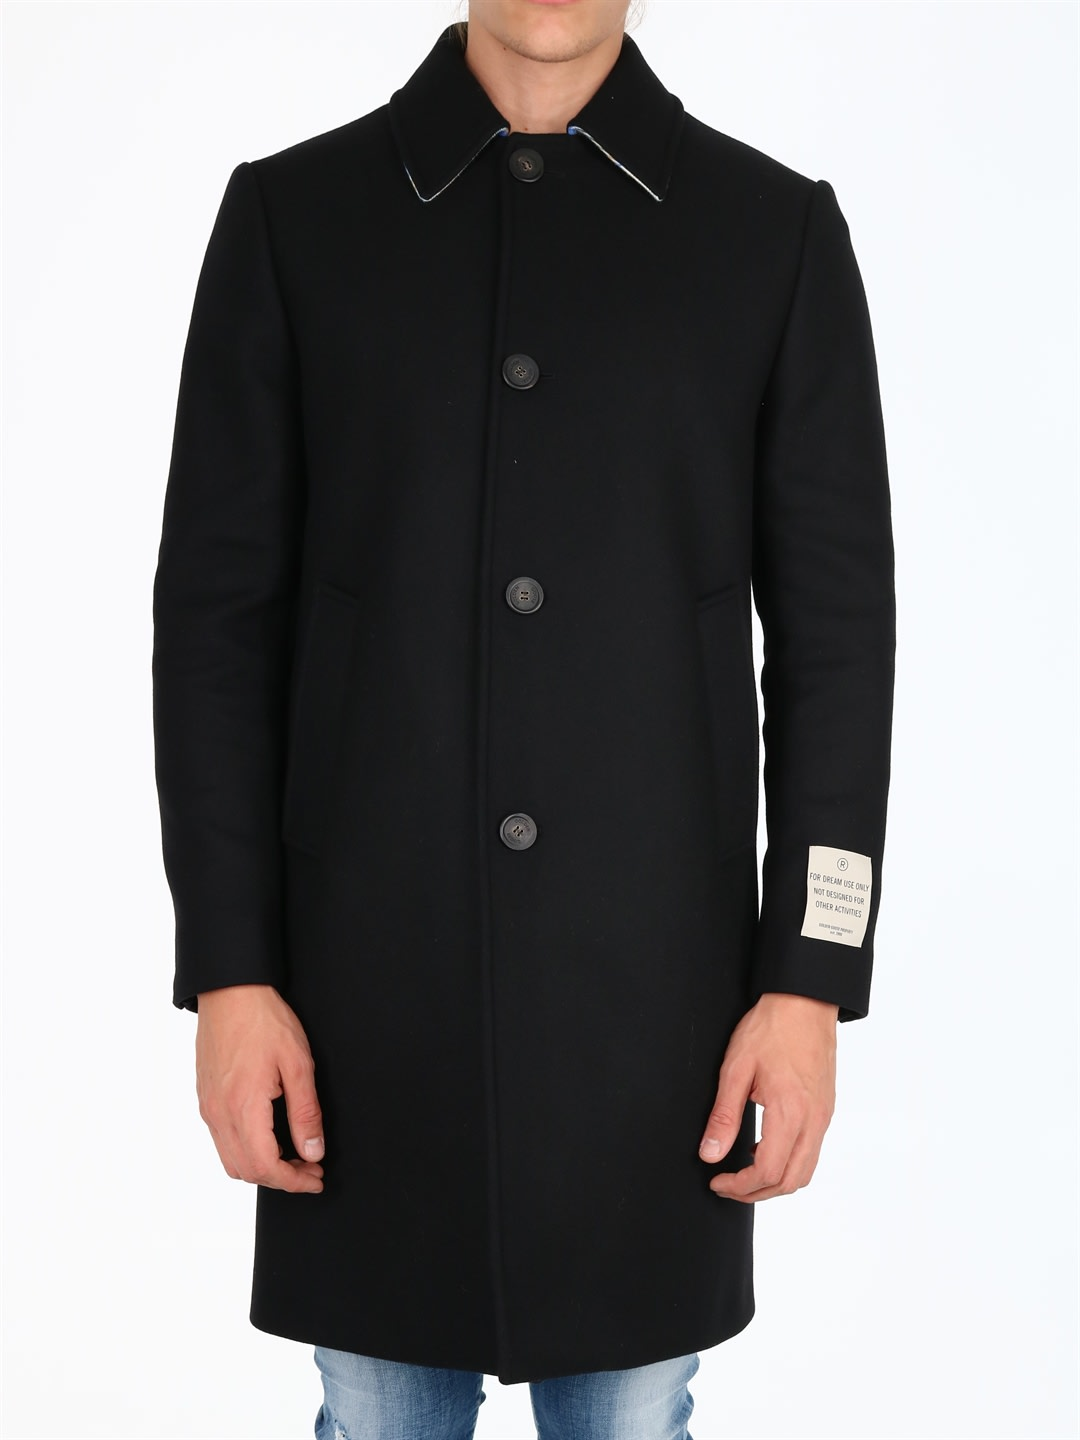 Single-breasted coat in black wool with multicolor check detail on the back of the collar. Single-breasted closure, label sewn on the sleeve. Side pockets, central back vents. The model is 1. 90 cm tall and wears size 50IT / LComposition: 80% Virgin Wool, 20% Polyamide